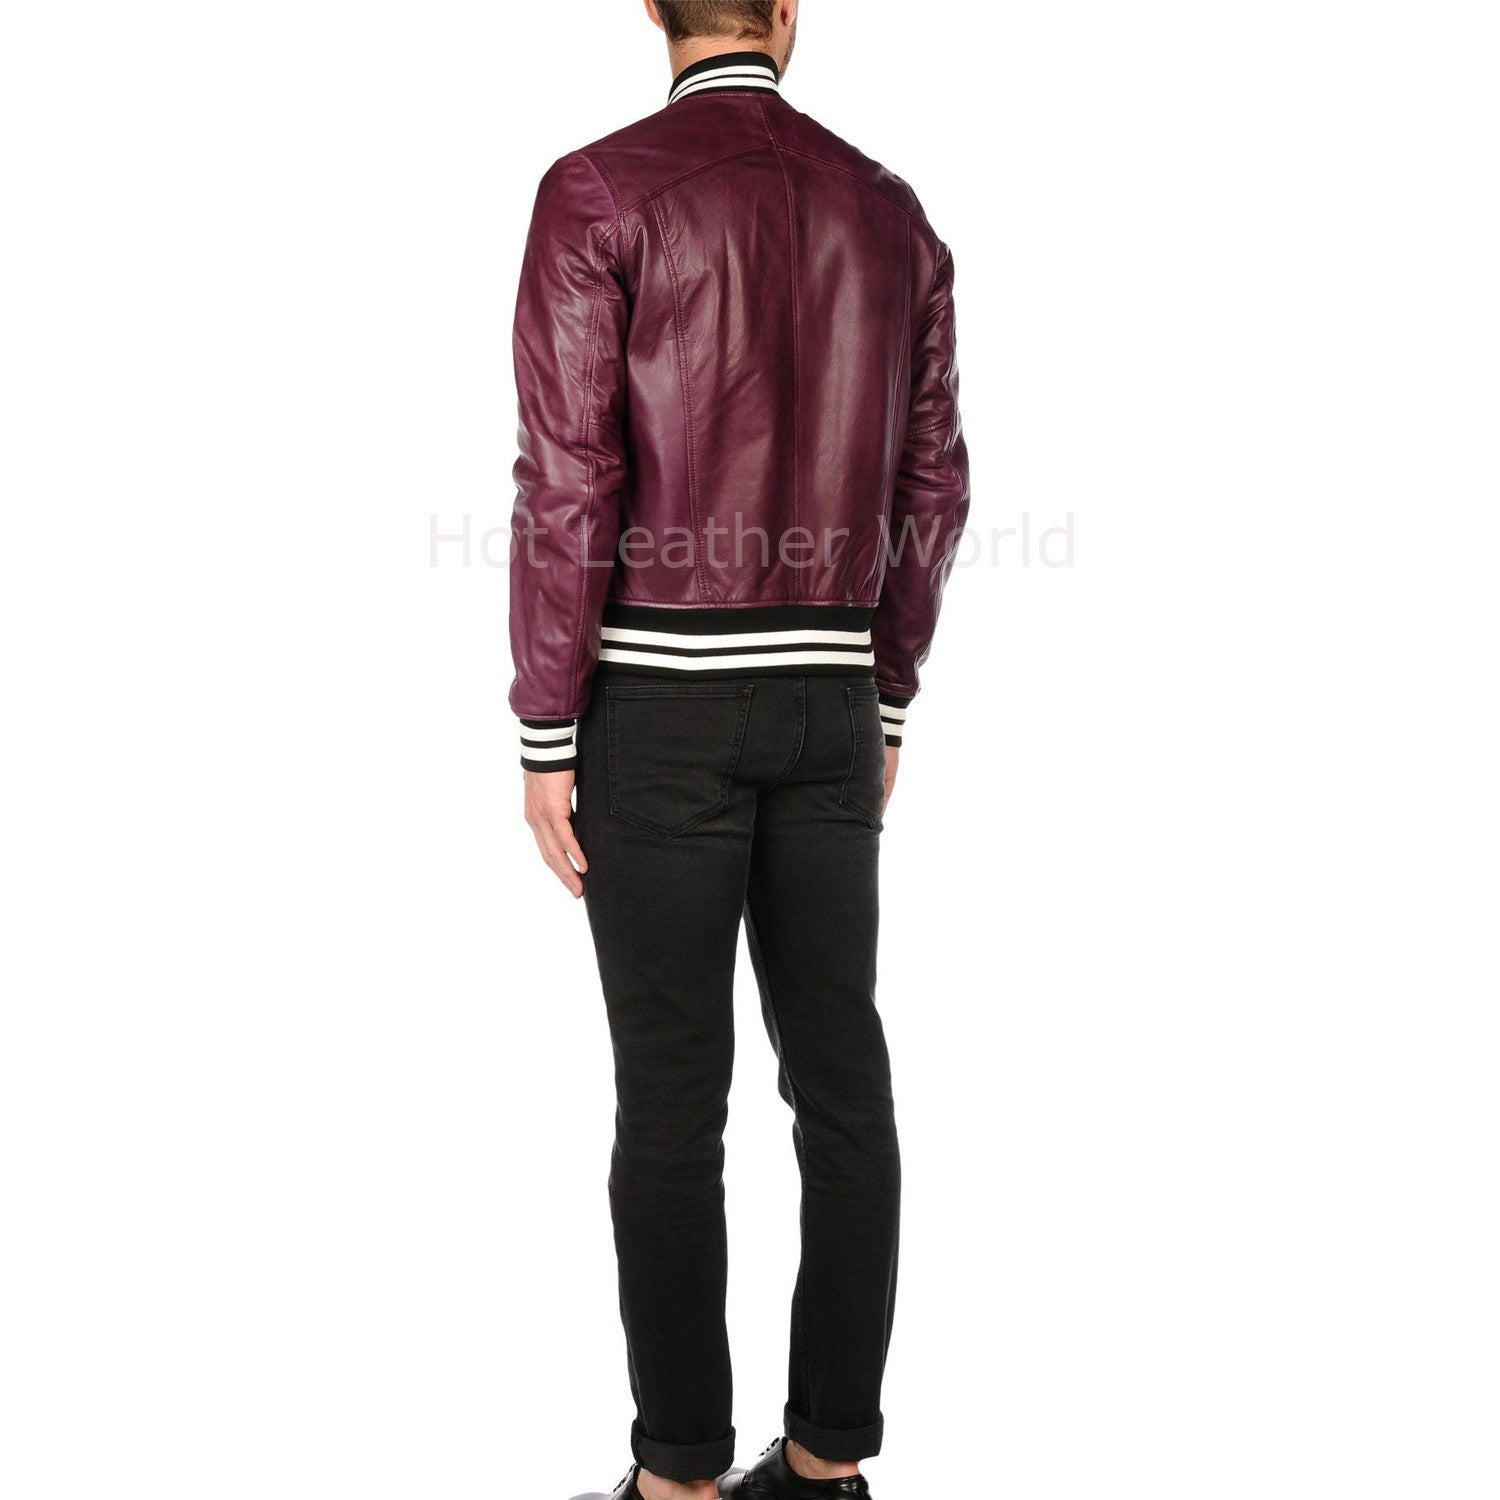 Contrast Detail Men Leather Bomber Jacket -  HOTLEATHERWORLD